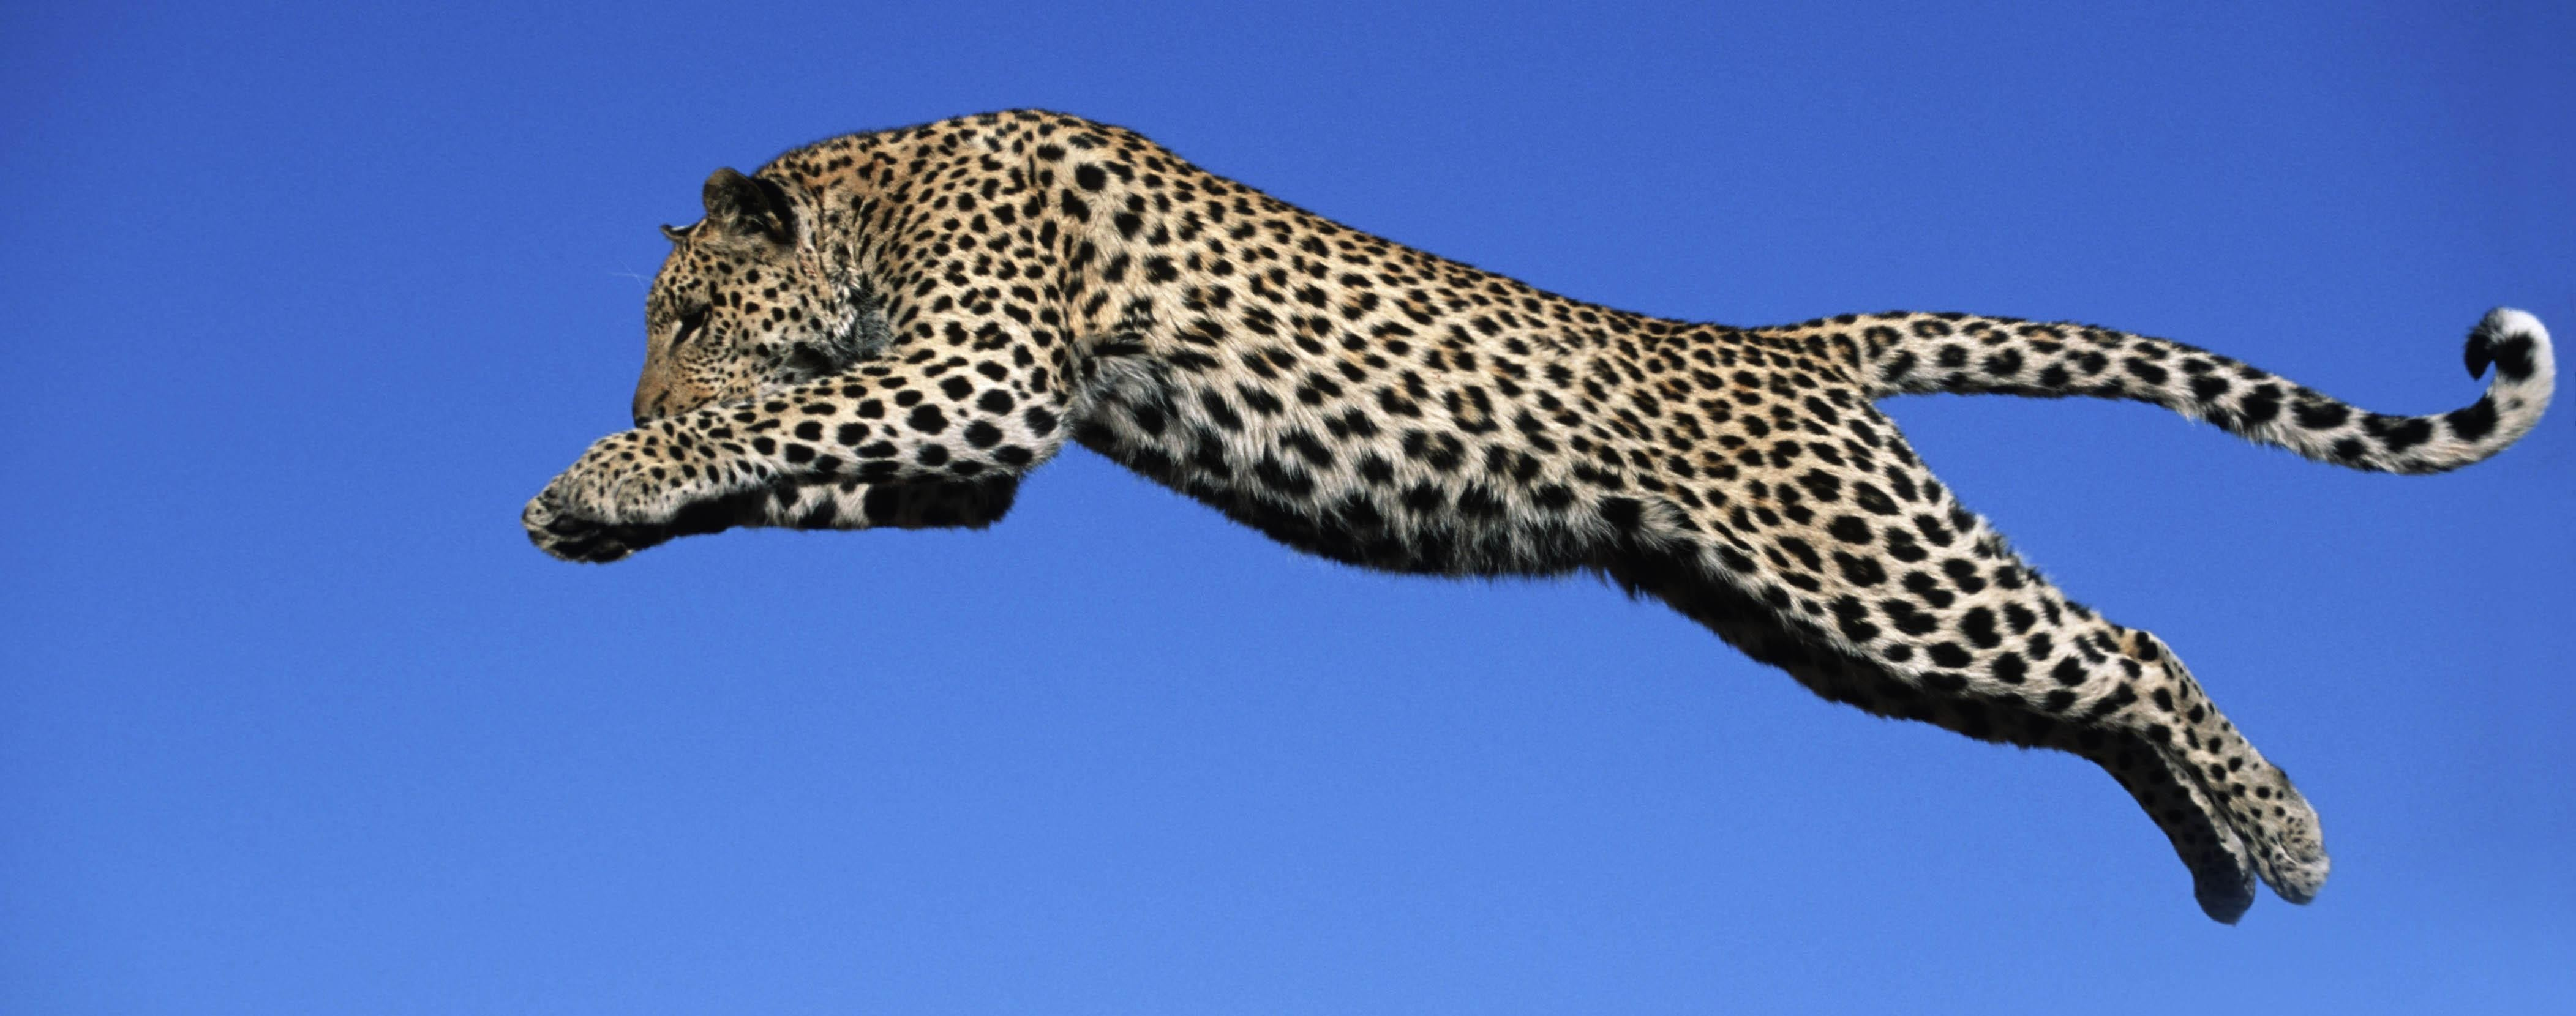 Animals jumping feline Leopards HD Wallpaper